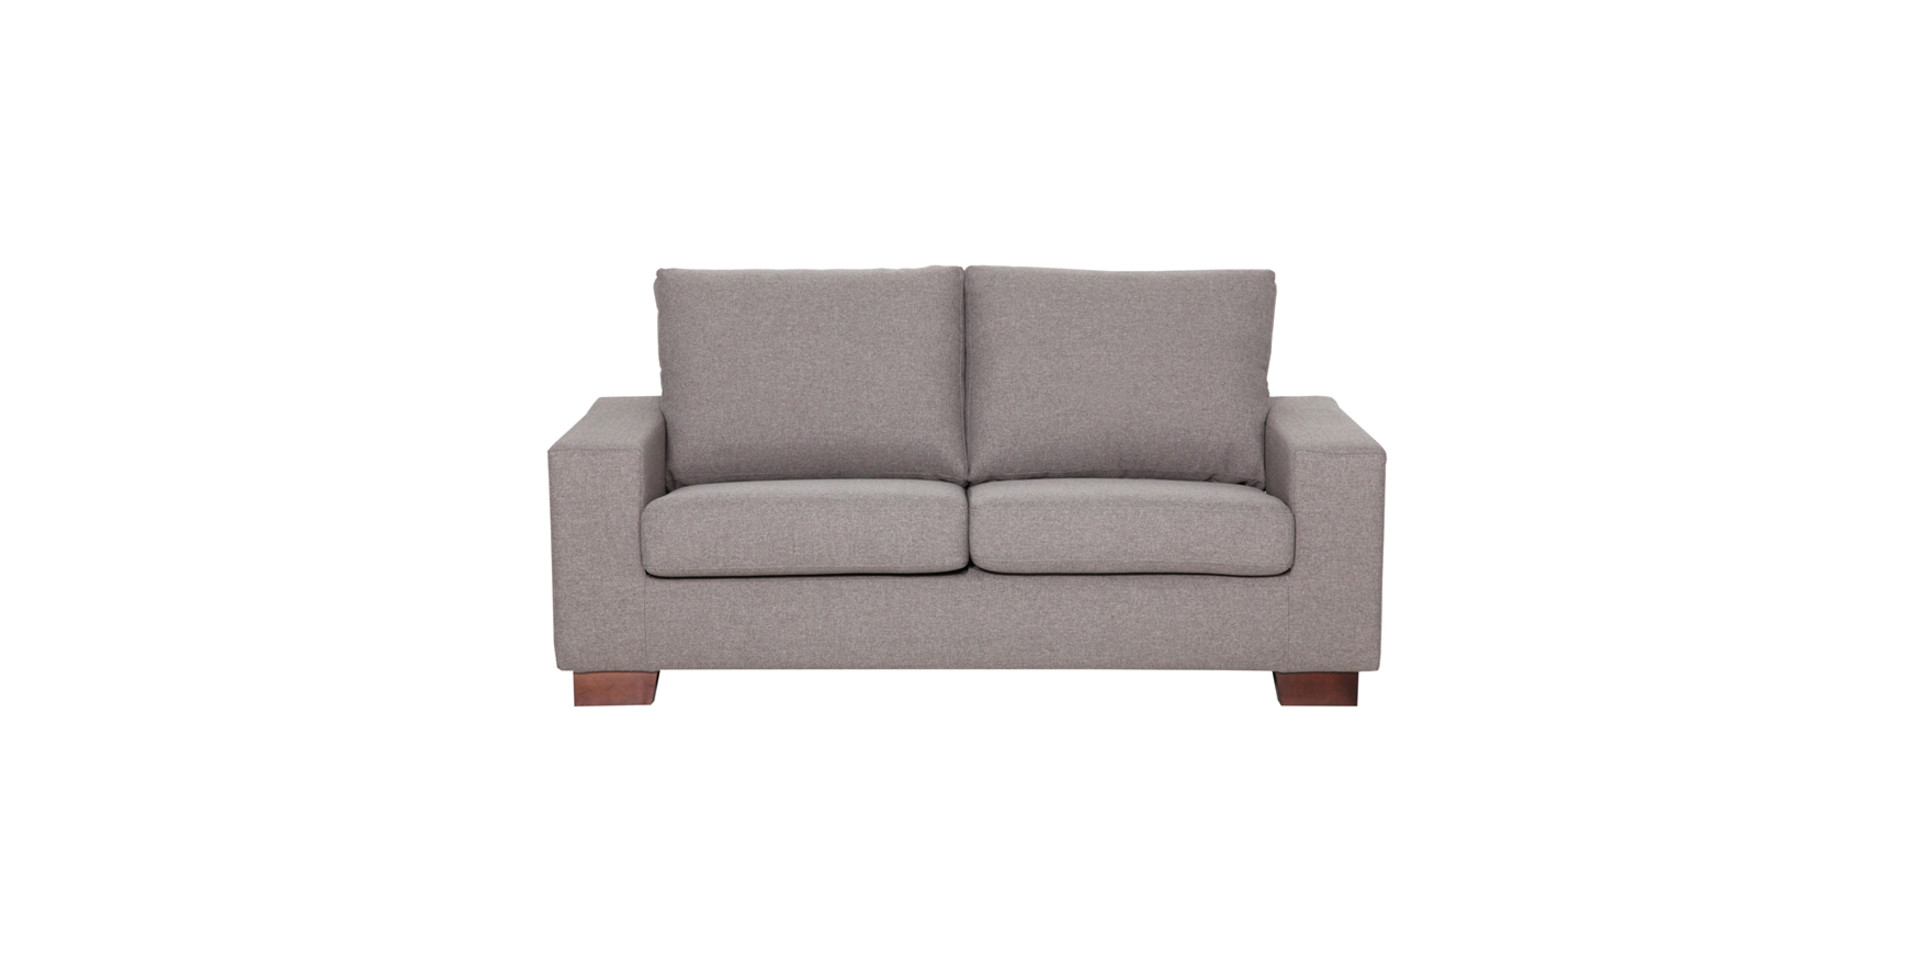 sits-quick-canape-2seater_pacad8d8grey_1